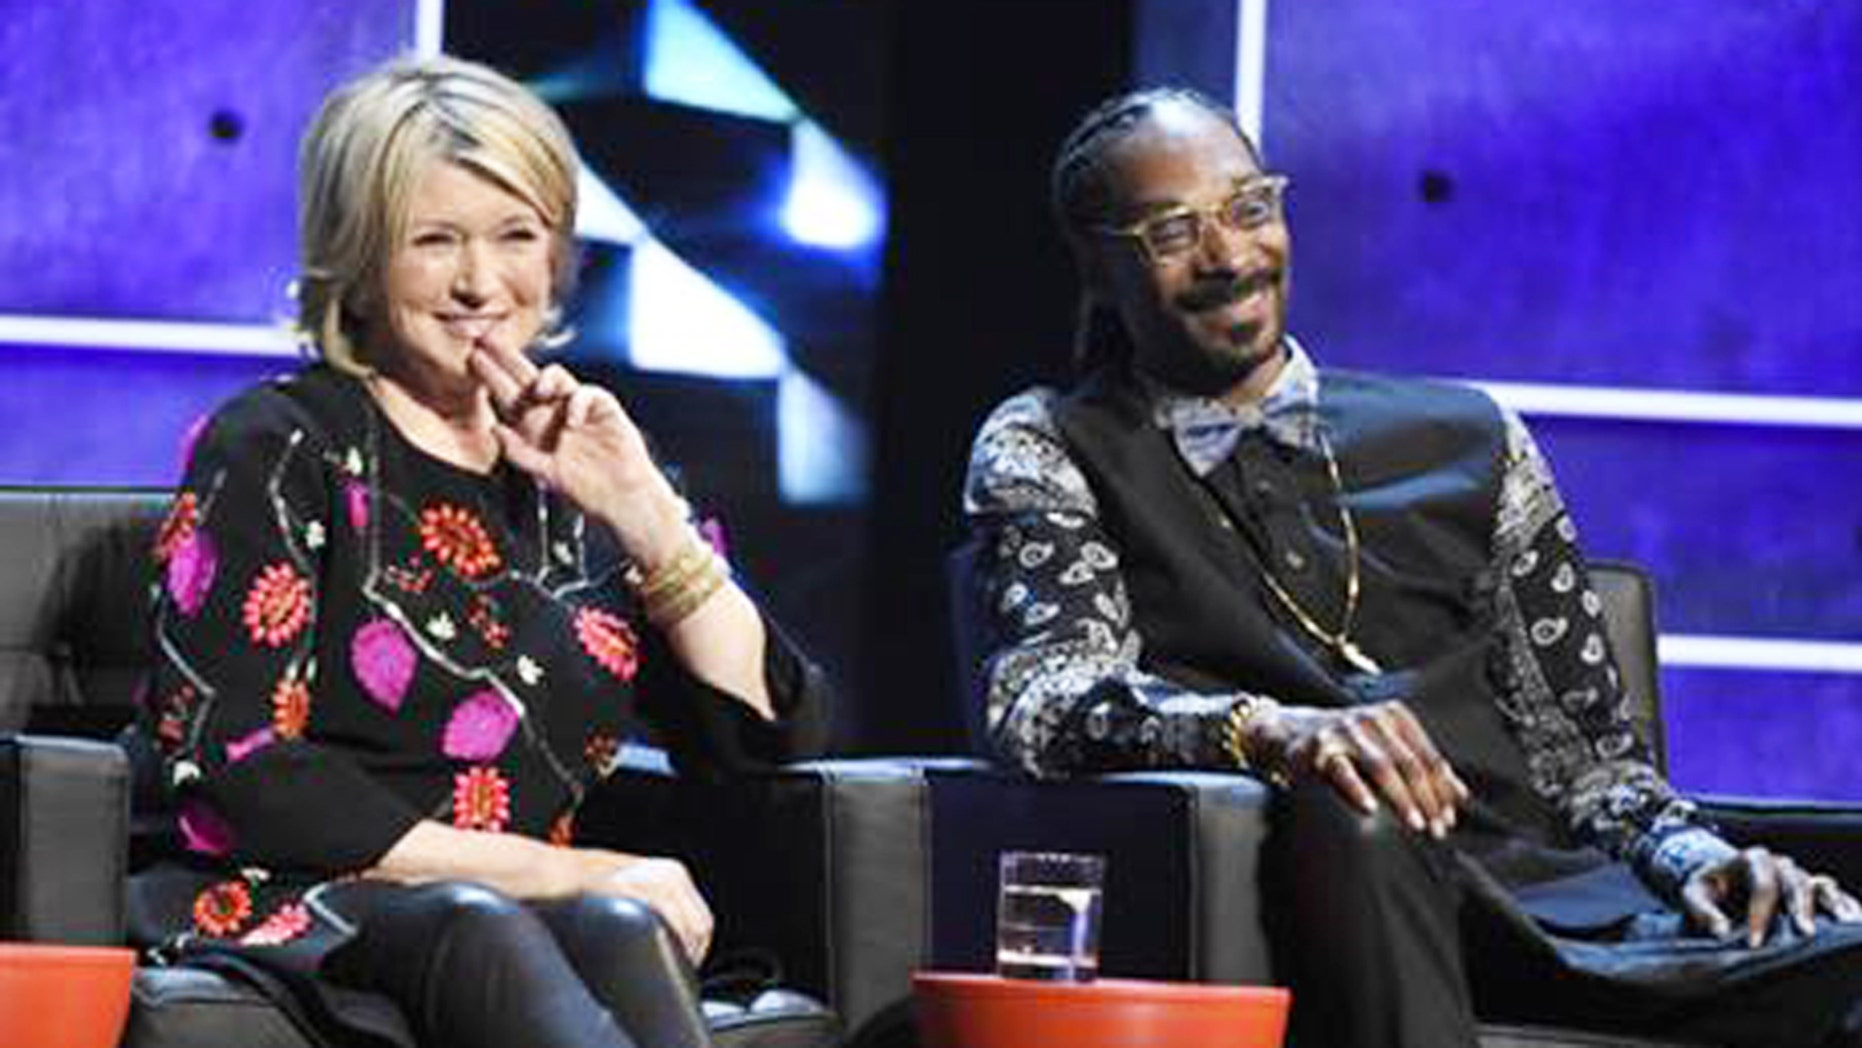 Martha Stewart, left, and Snoop Dogg appeared together on stage at the Comedy Central Roast of Justin Bieber in 2015.